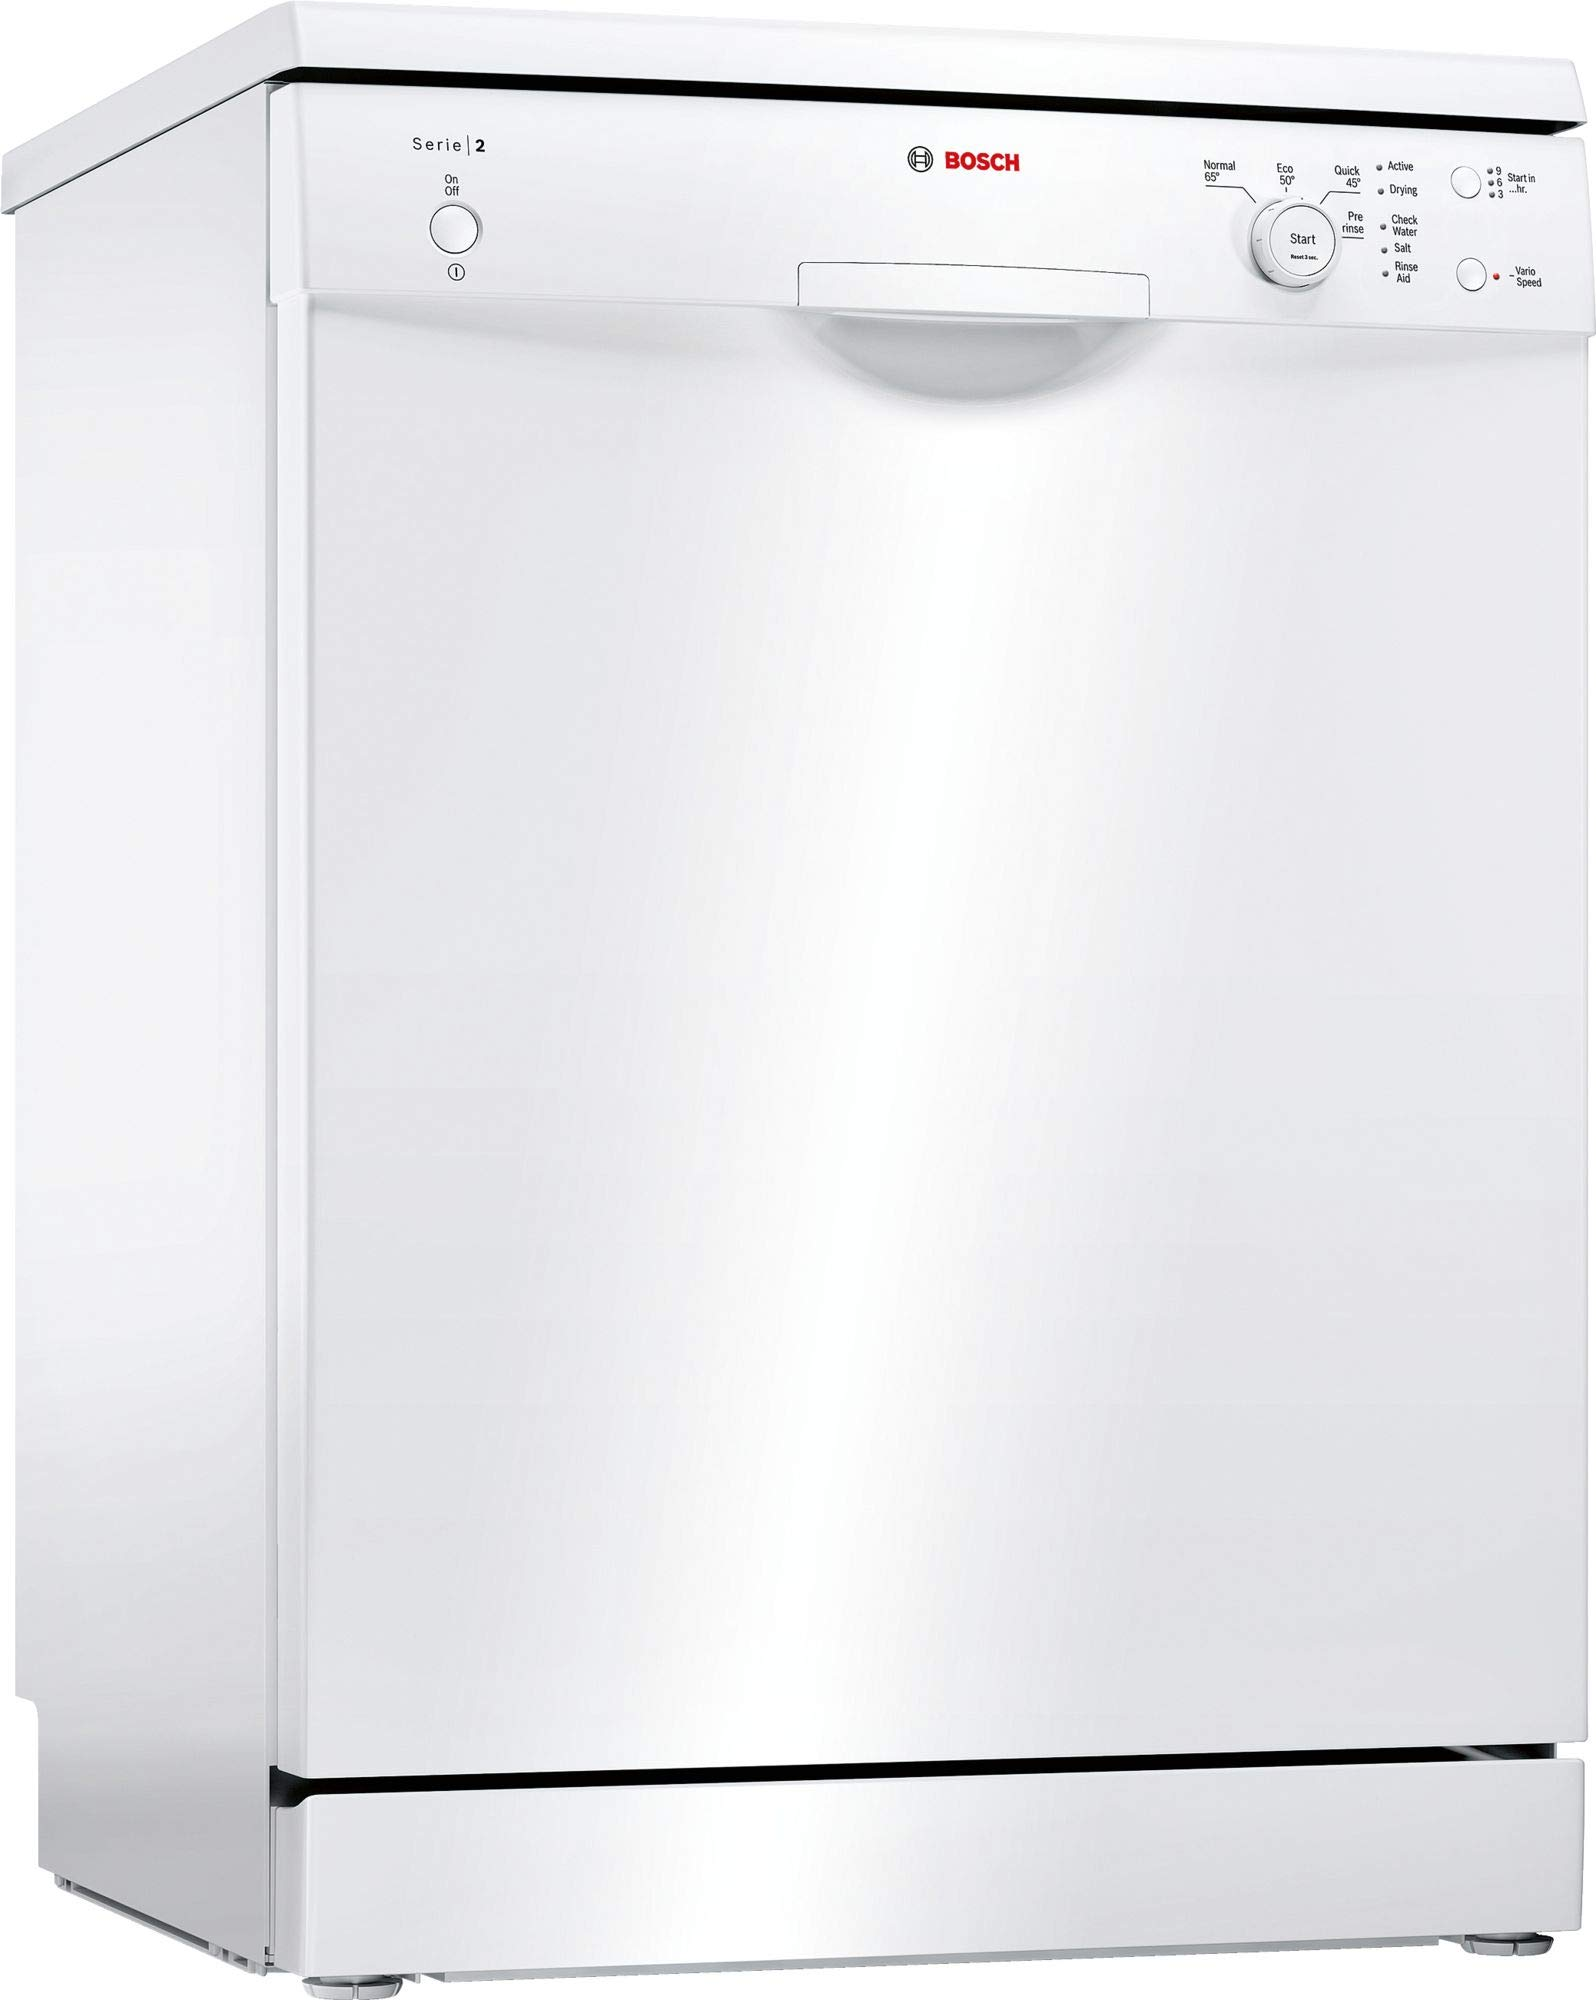 BOSCH SMS24AW01G Serie 2 Freestanding Dishwasher, 12 place settings, 60cm wide, White